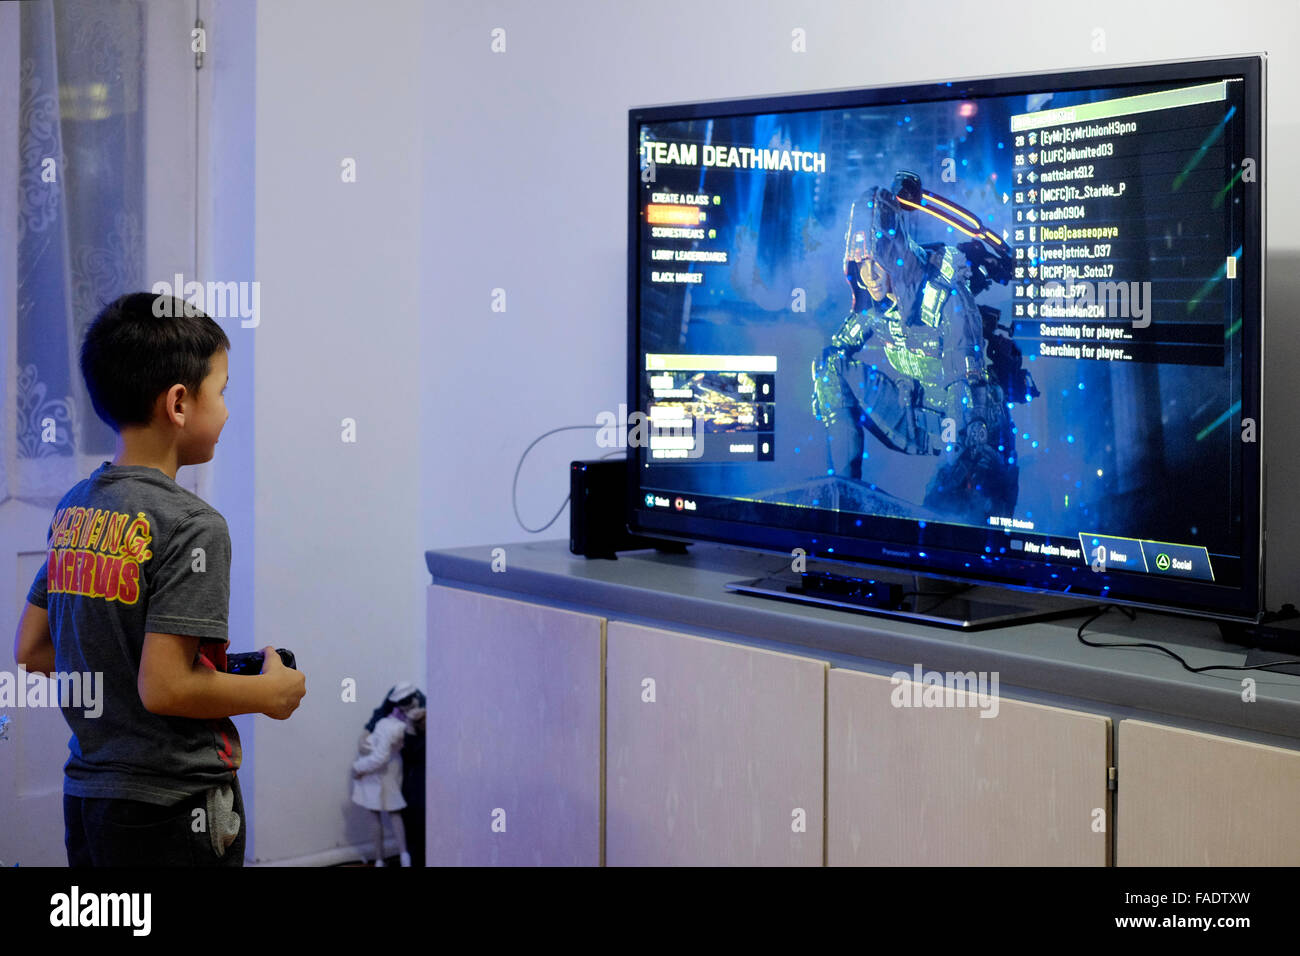 how to play video games on tv screen